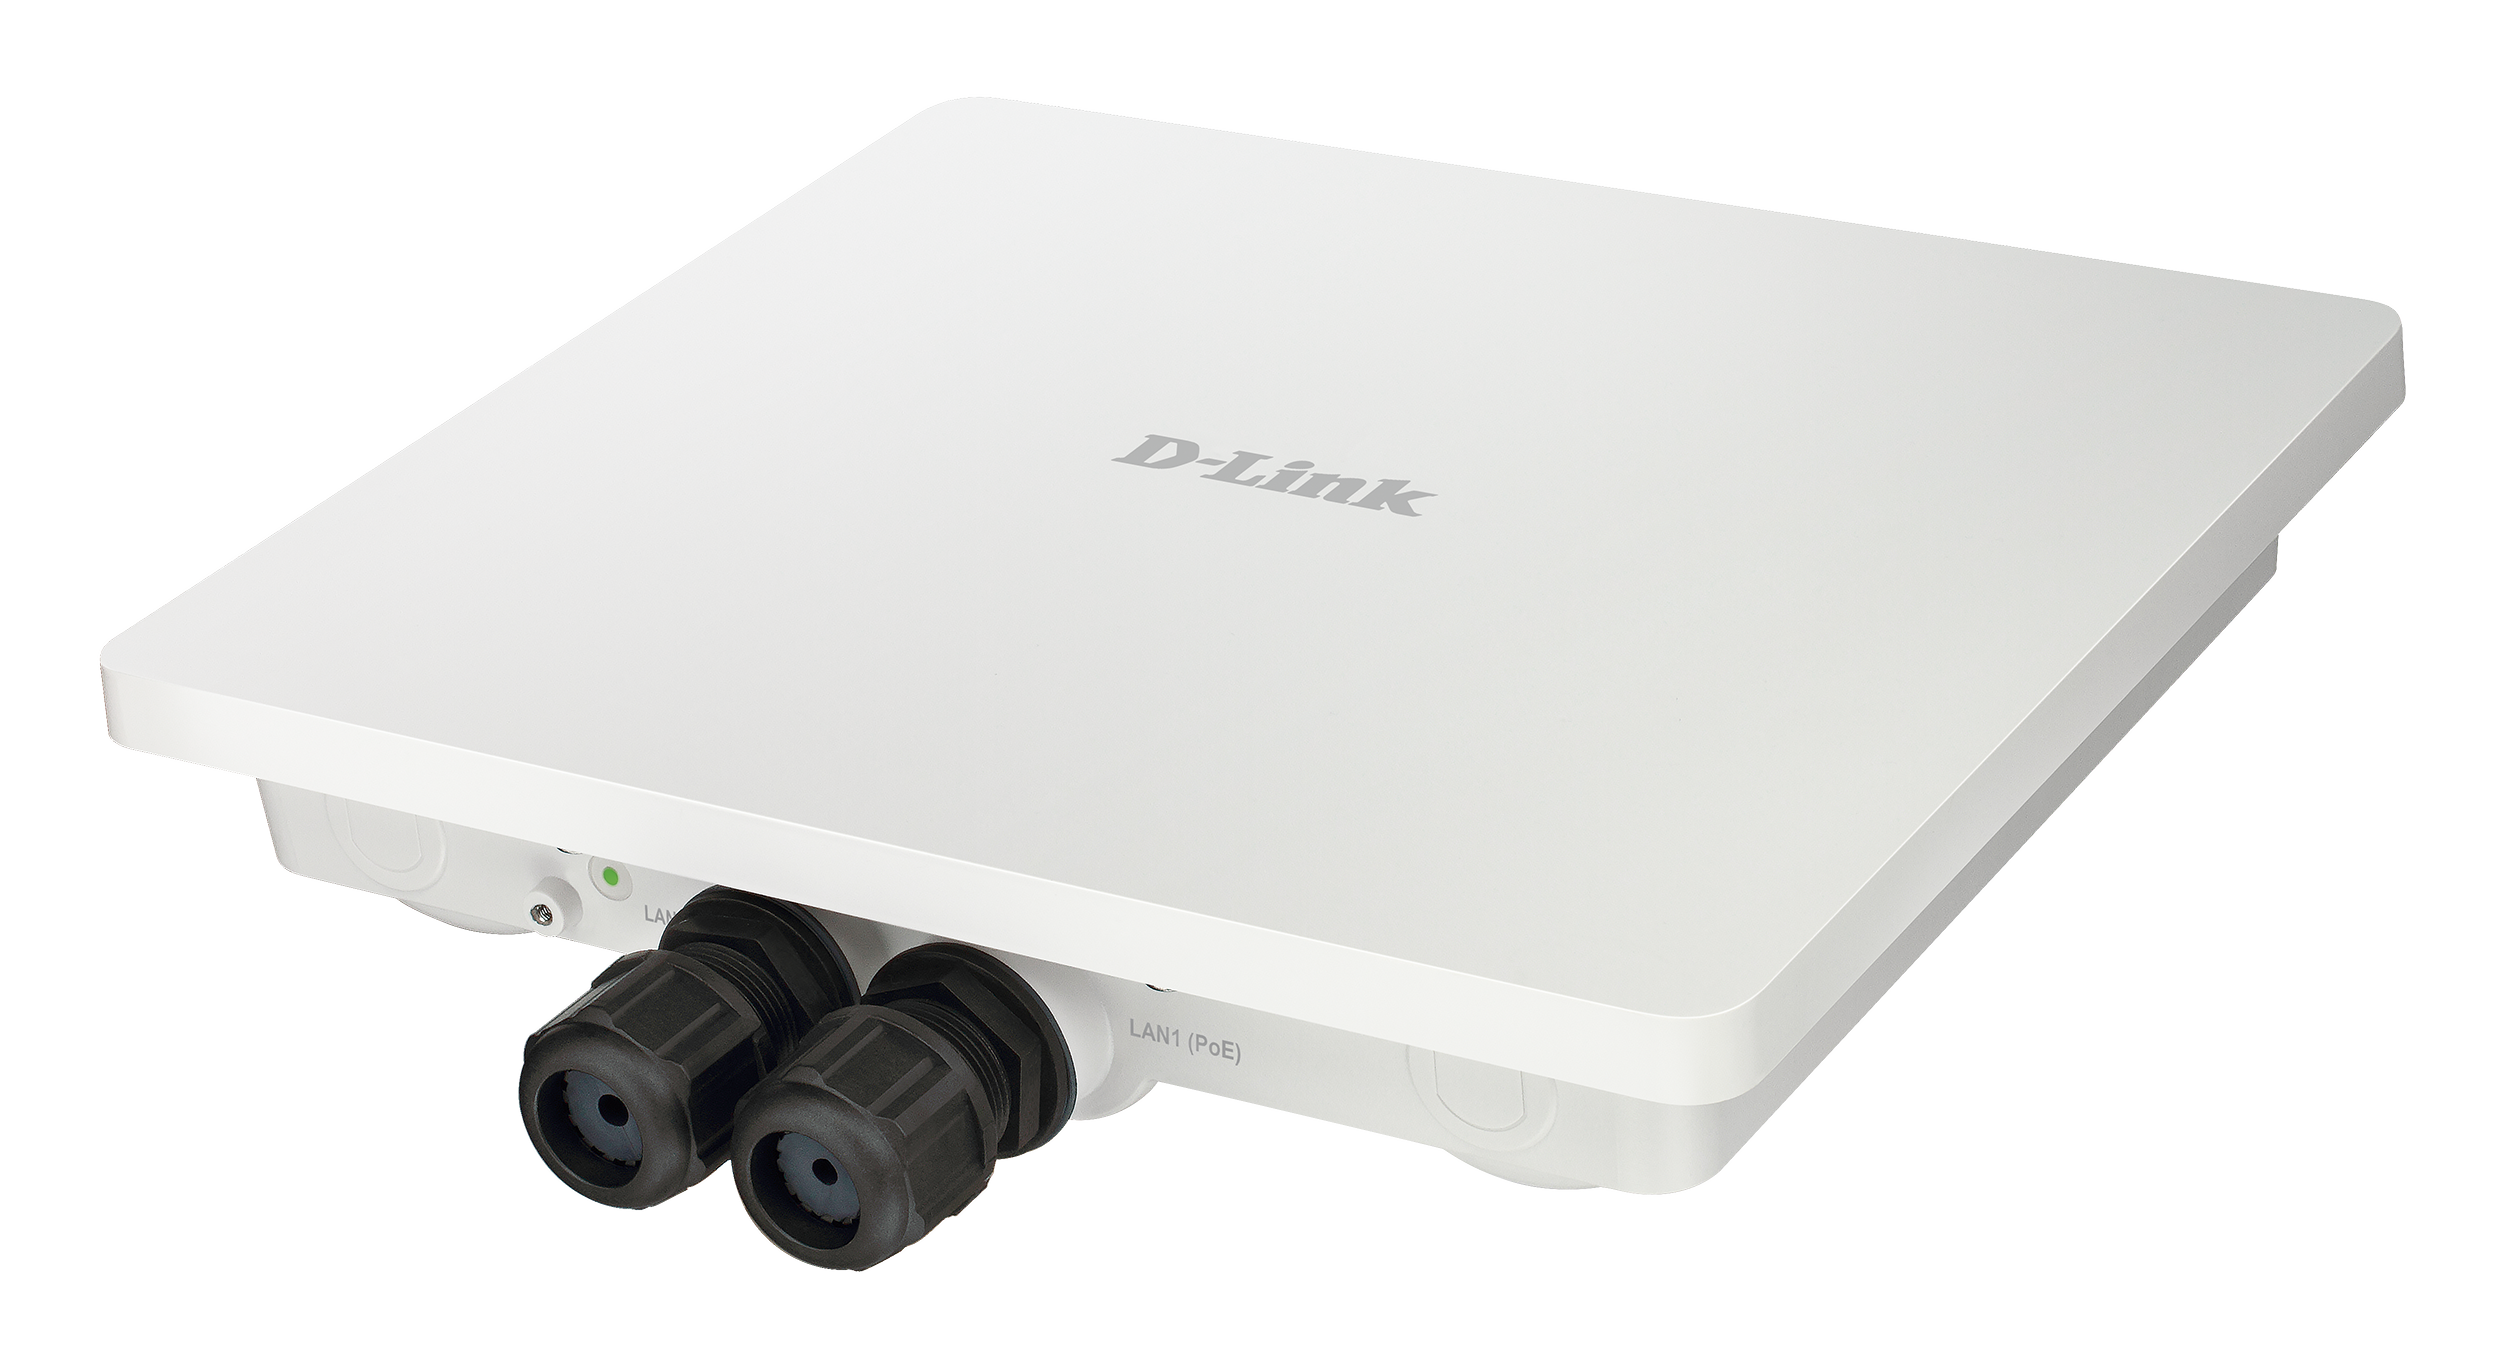 DAP-3666 Wireless AC1200 Wave 2 Dual-Band Outdoor PoE Access Point - Side left bottom angled